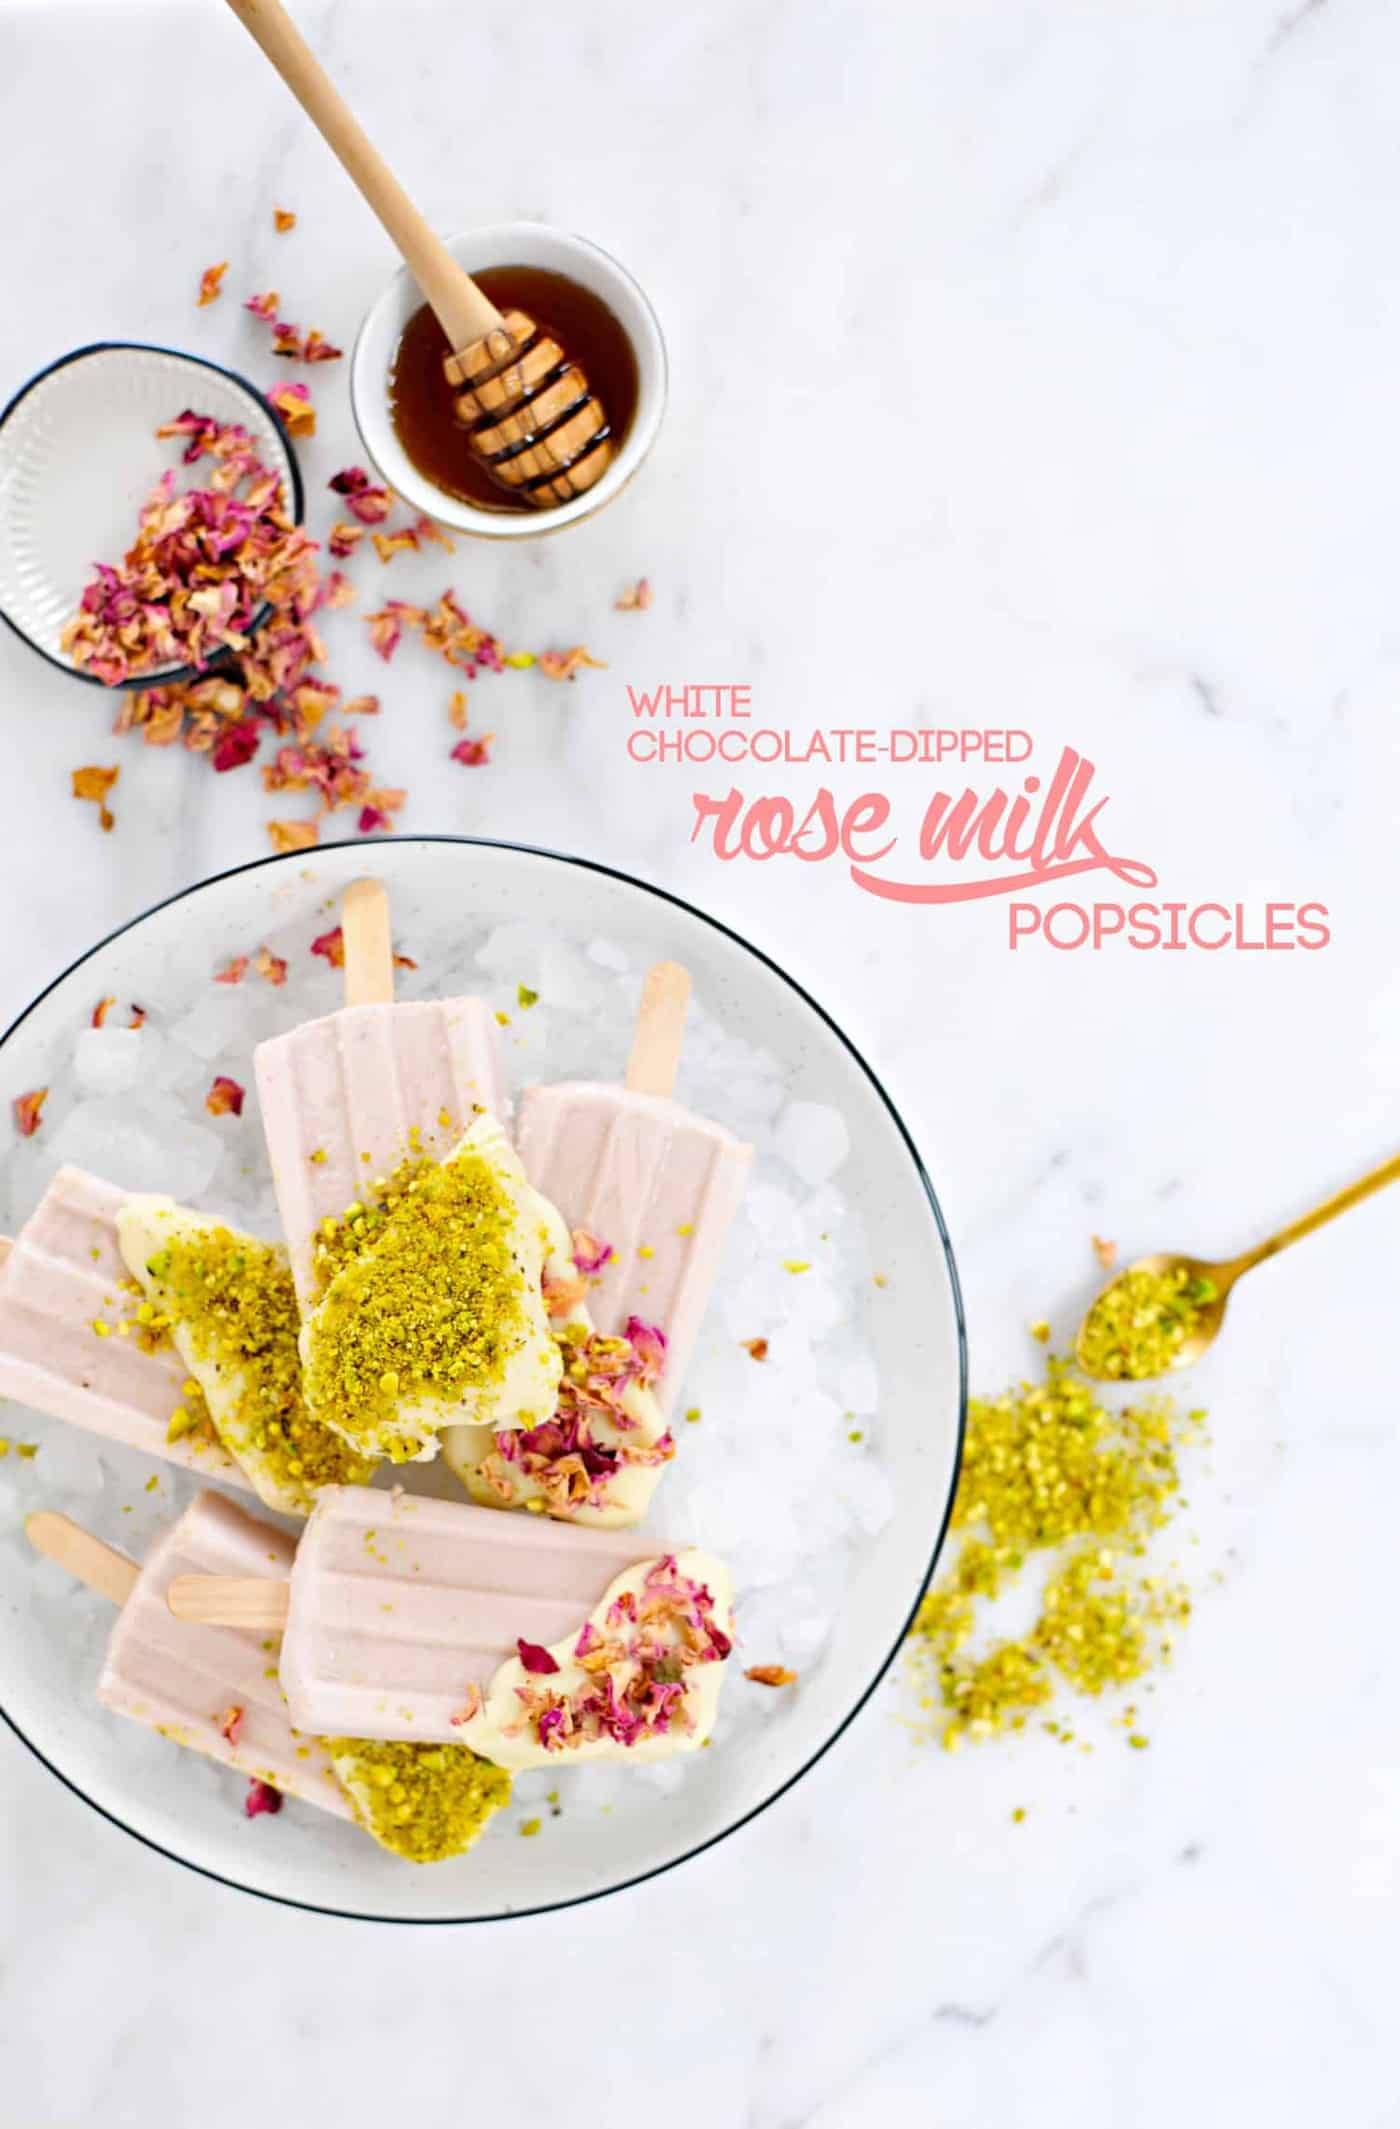 White Chocolate Dipped Rose Milk Popsicles recipe (via thepigandquill.com) #summer #dessert #pistachios